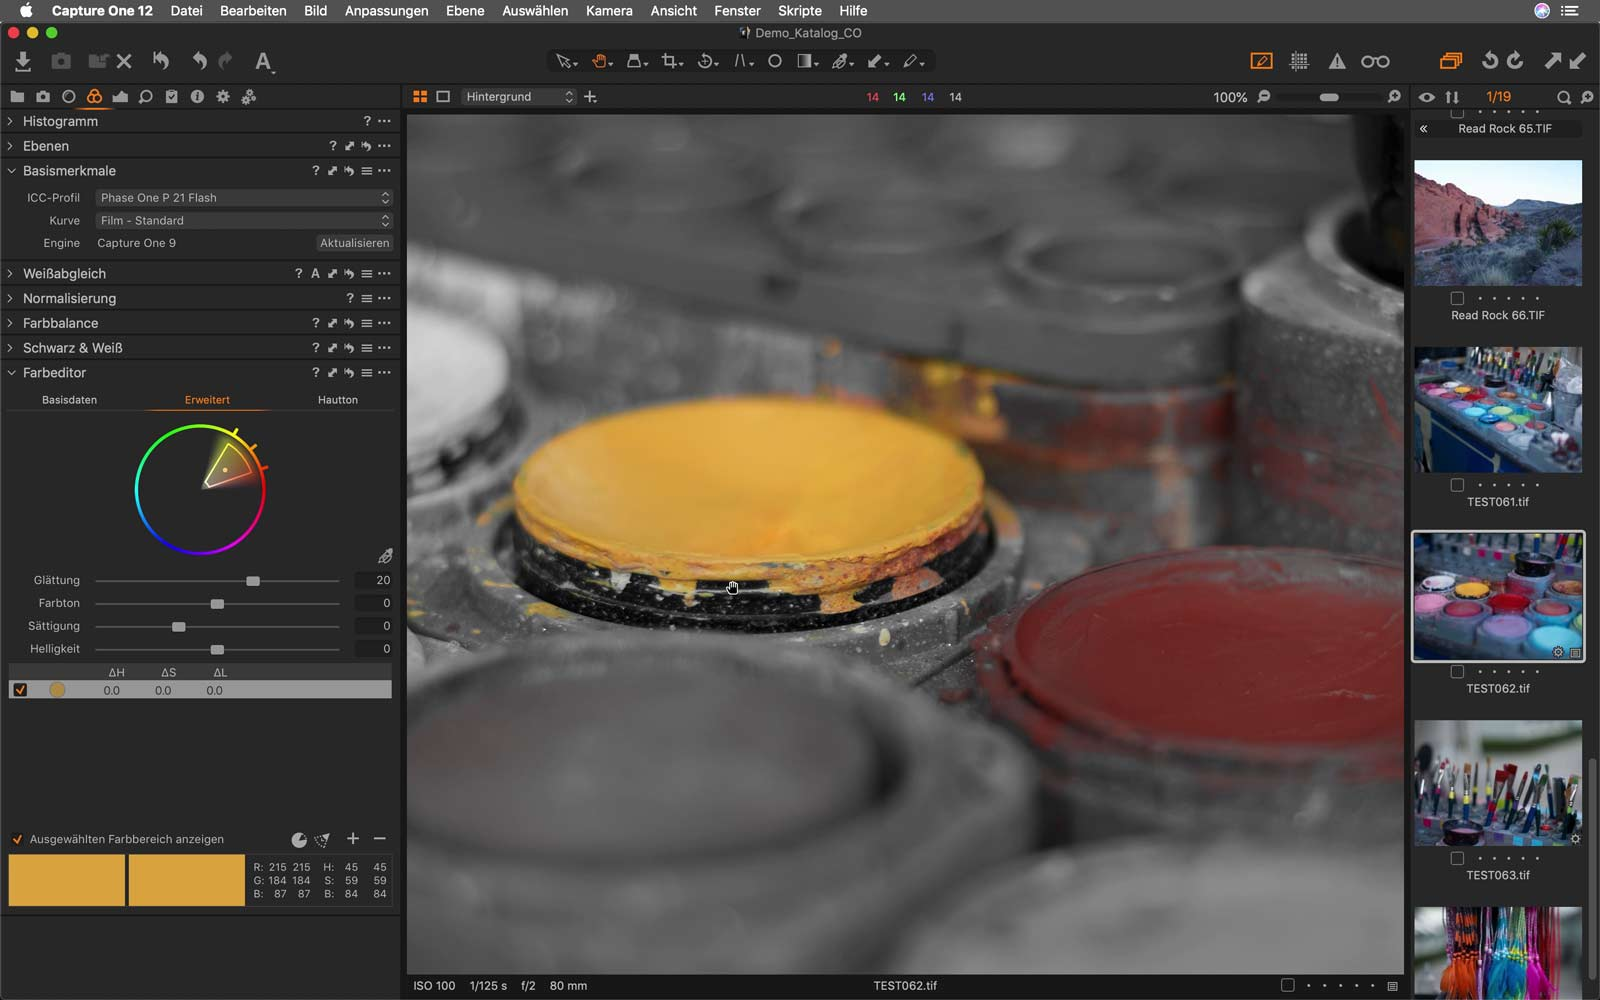 Farbeditor Bildbearbeitungssoftware Capture One